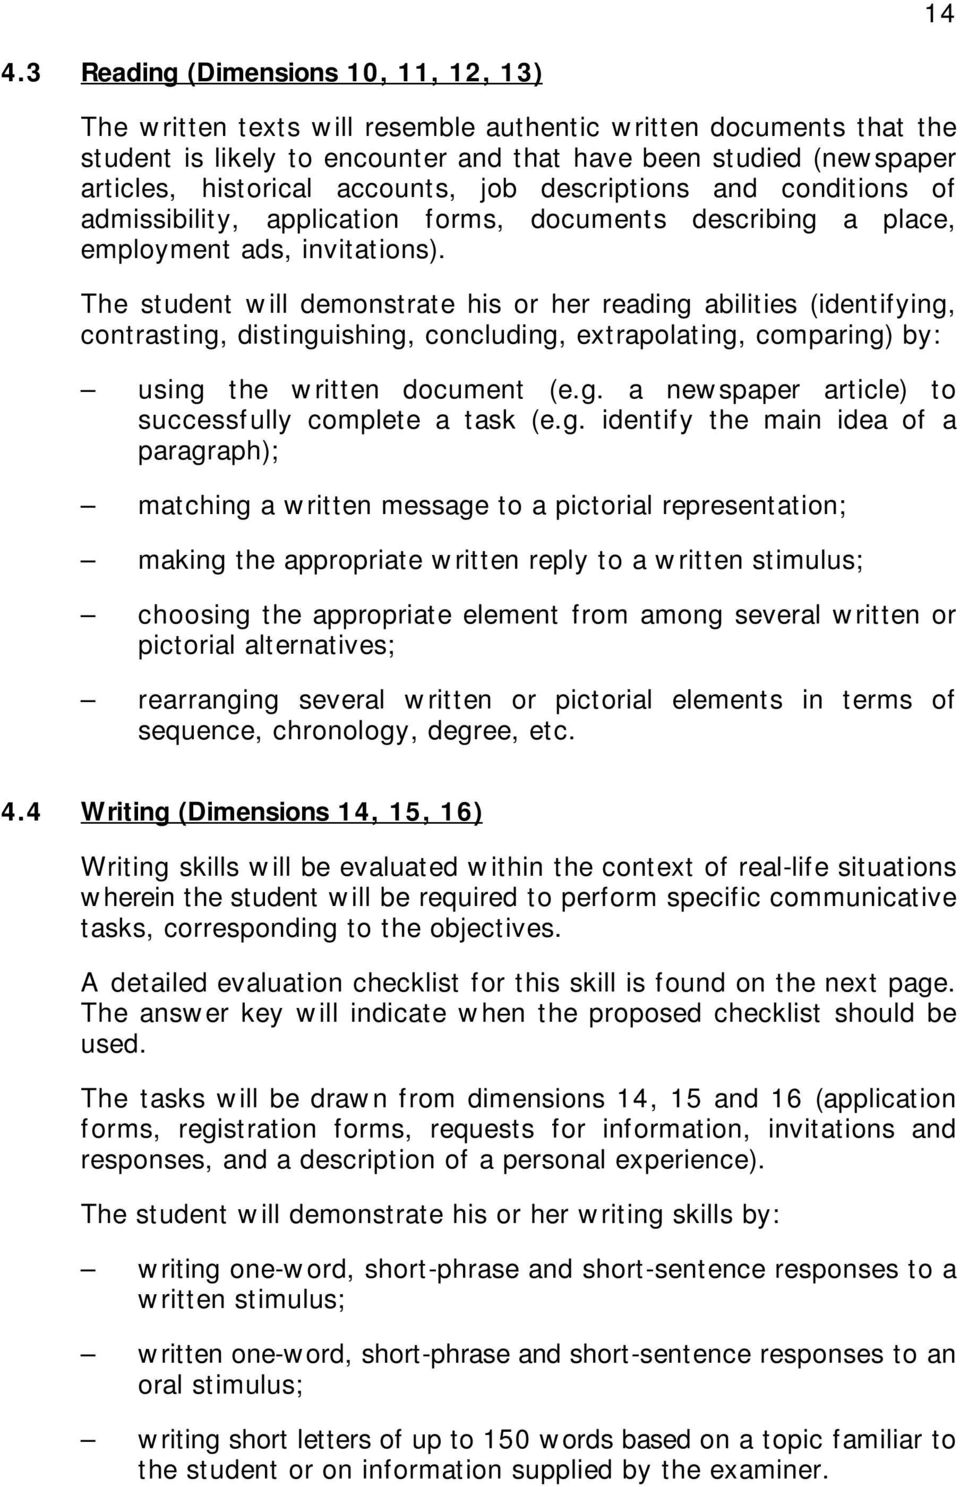 The student will demonstrate his or her reading abilities (identifying, contrasting, distinguishing, concluding, extrapolating, comparing) by: using the written document (e.g. a newspaper article) to successfully complete a task (e.